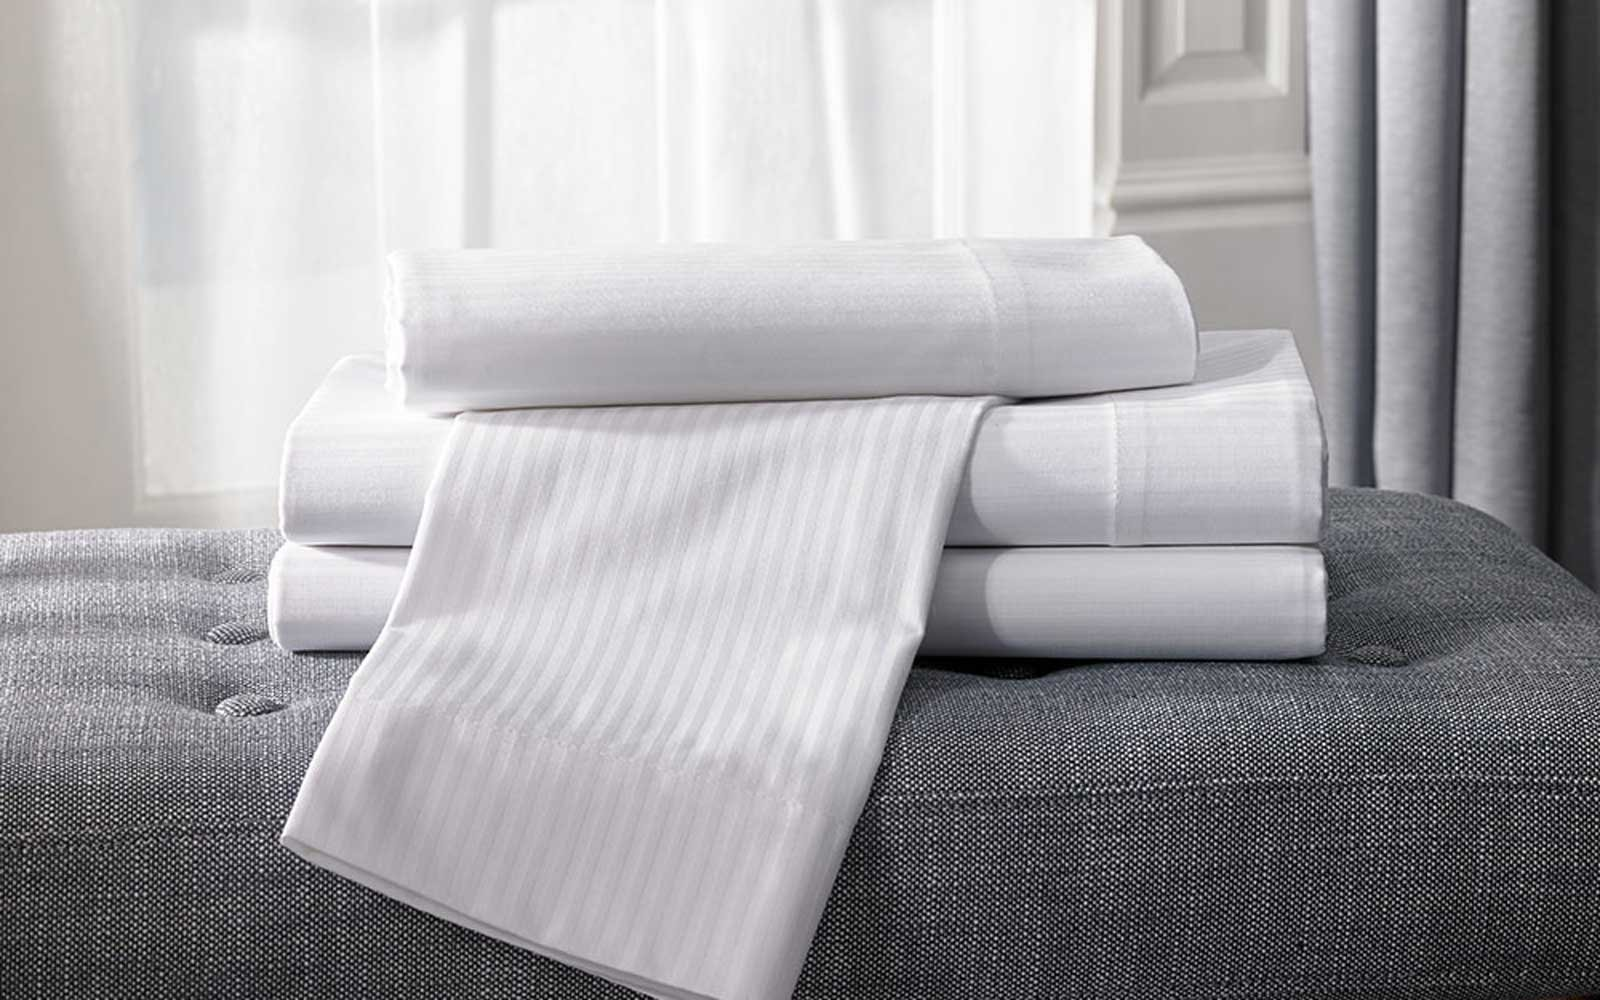 Hilton Hotel Stripe Sheet Set and Feather and Down Pillow & The Best Hotel Bedding and Pillows to Use at Home | Travel + Leisure